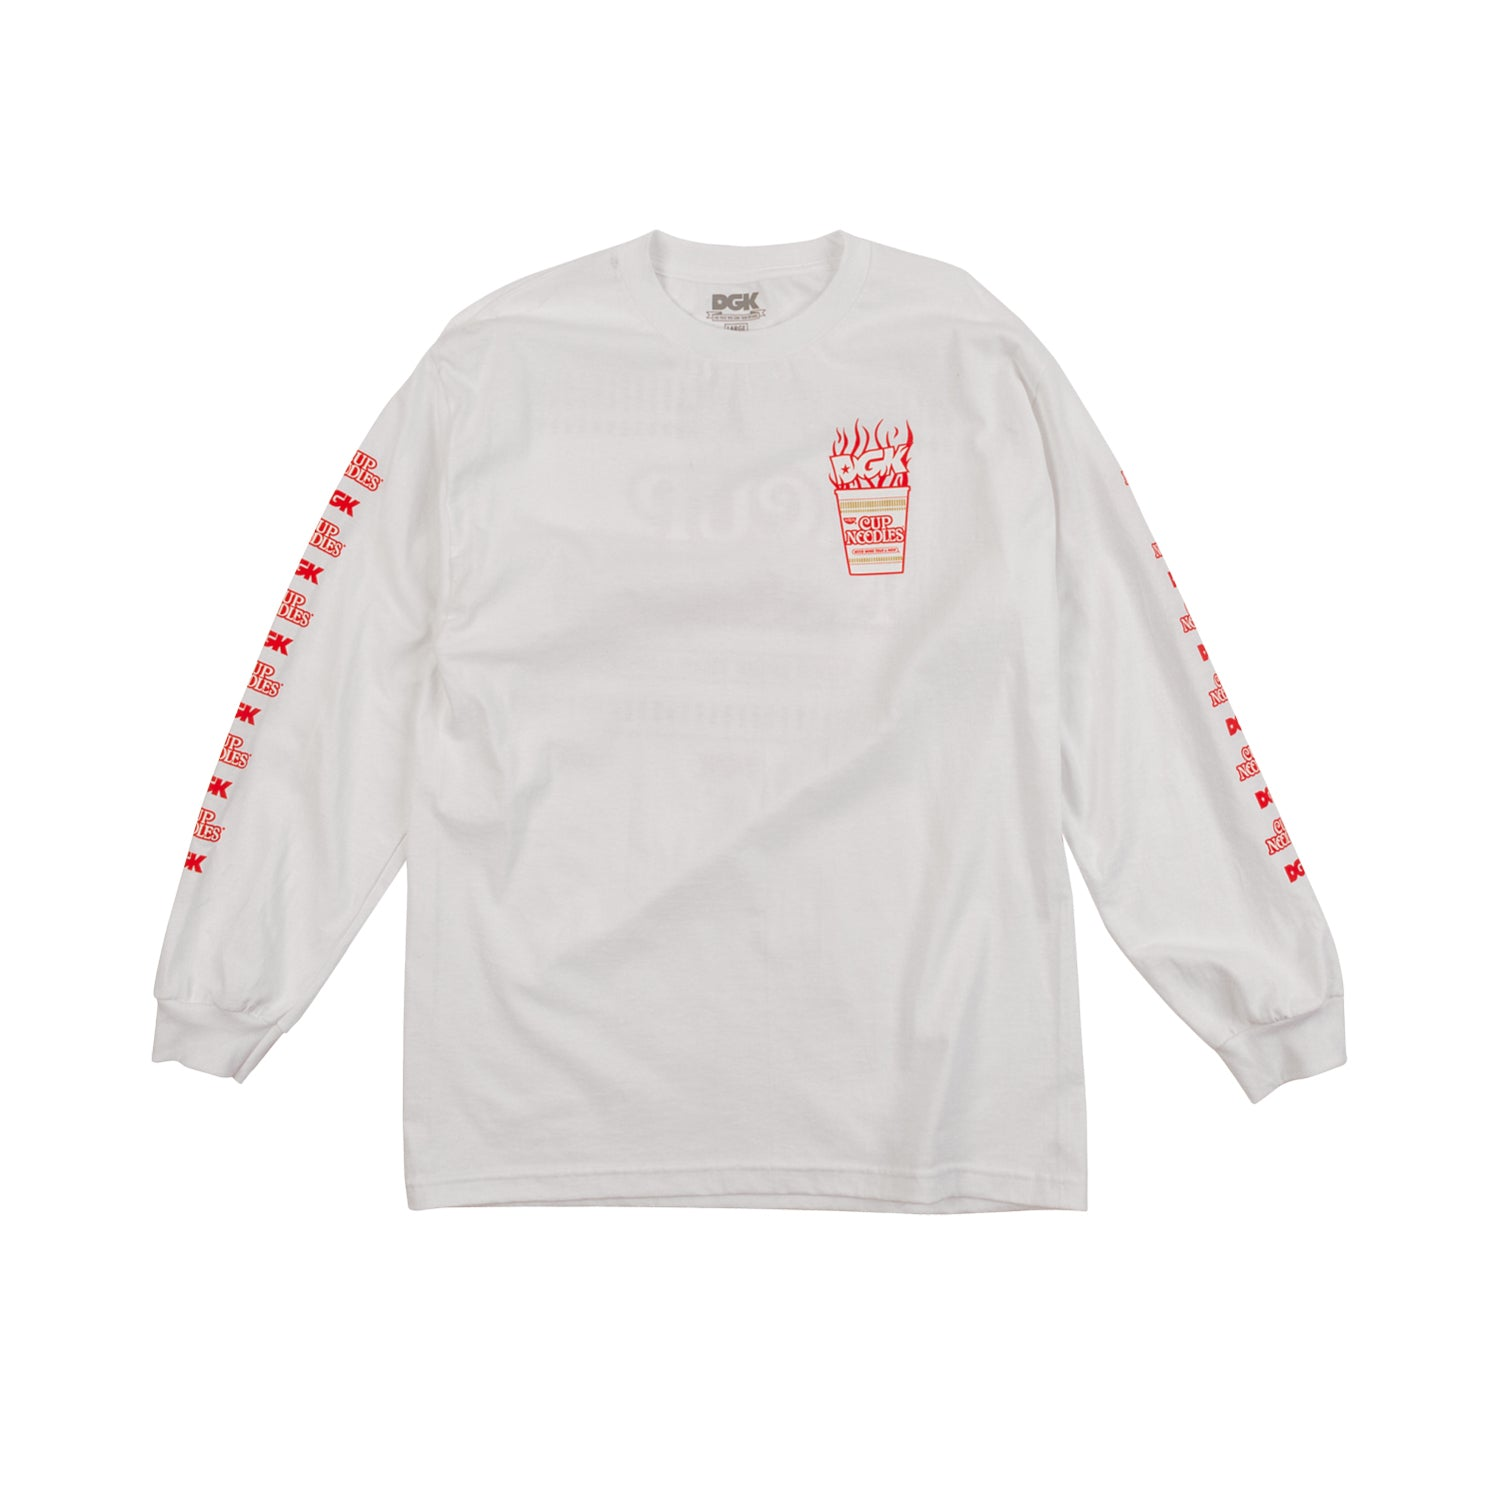 DGK x CUP NOODLES LOGO LONG SLEEVE T-SHIRT